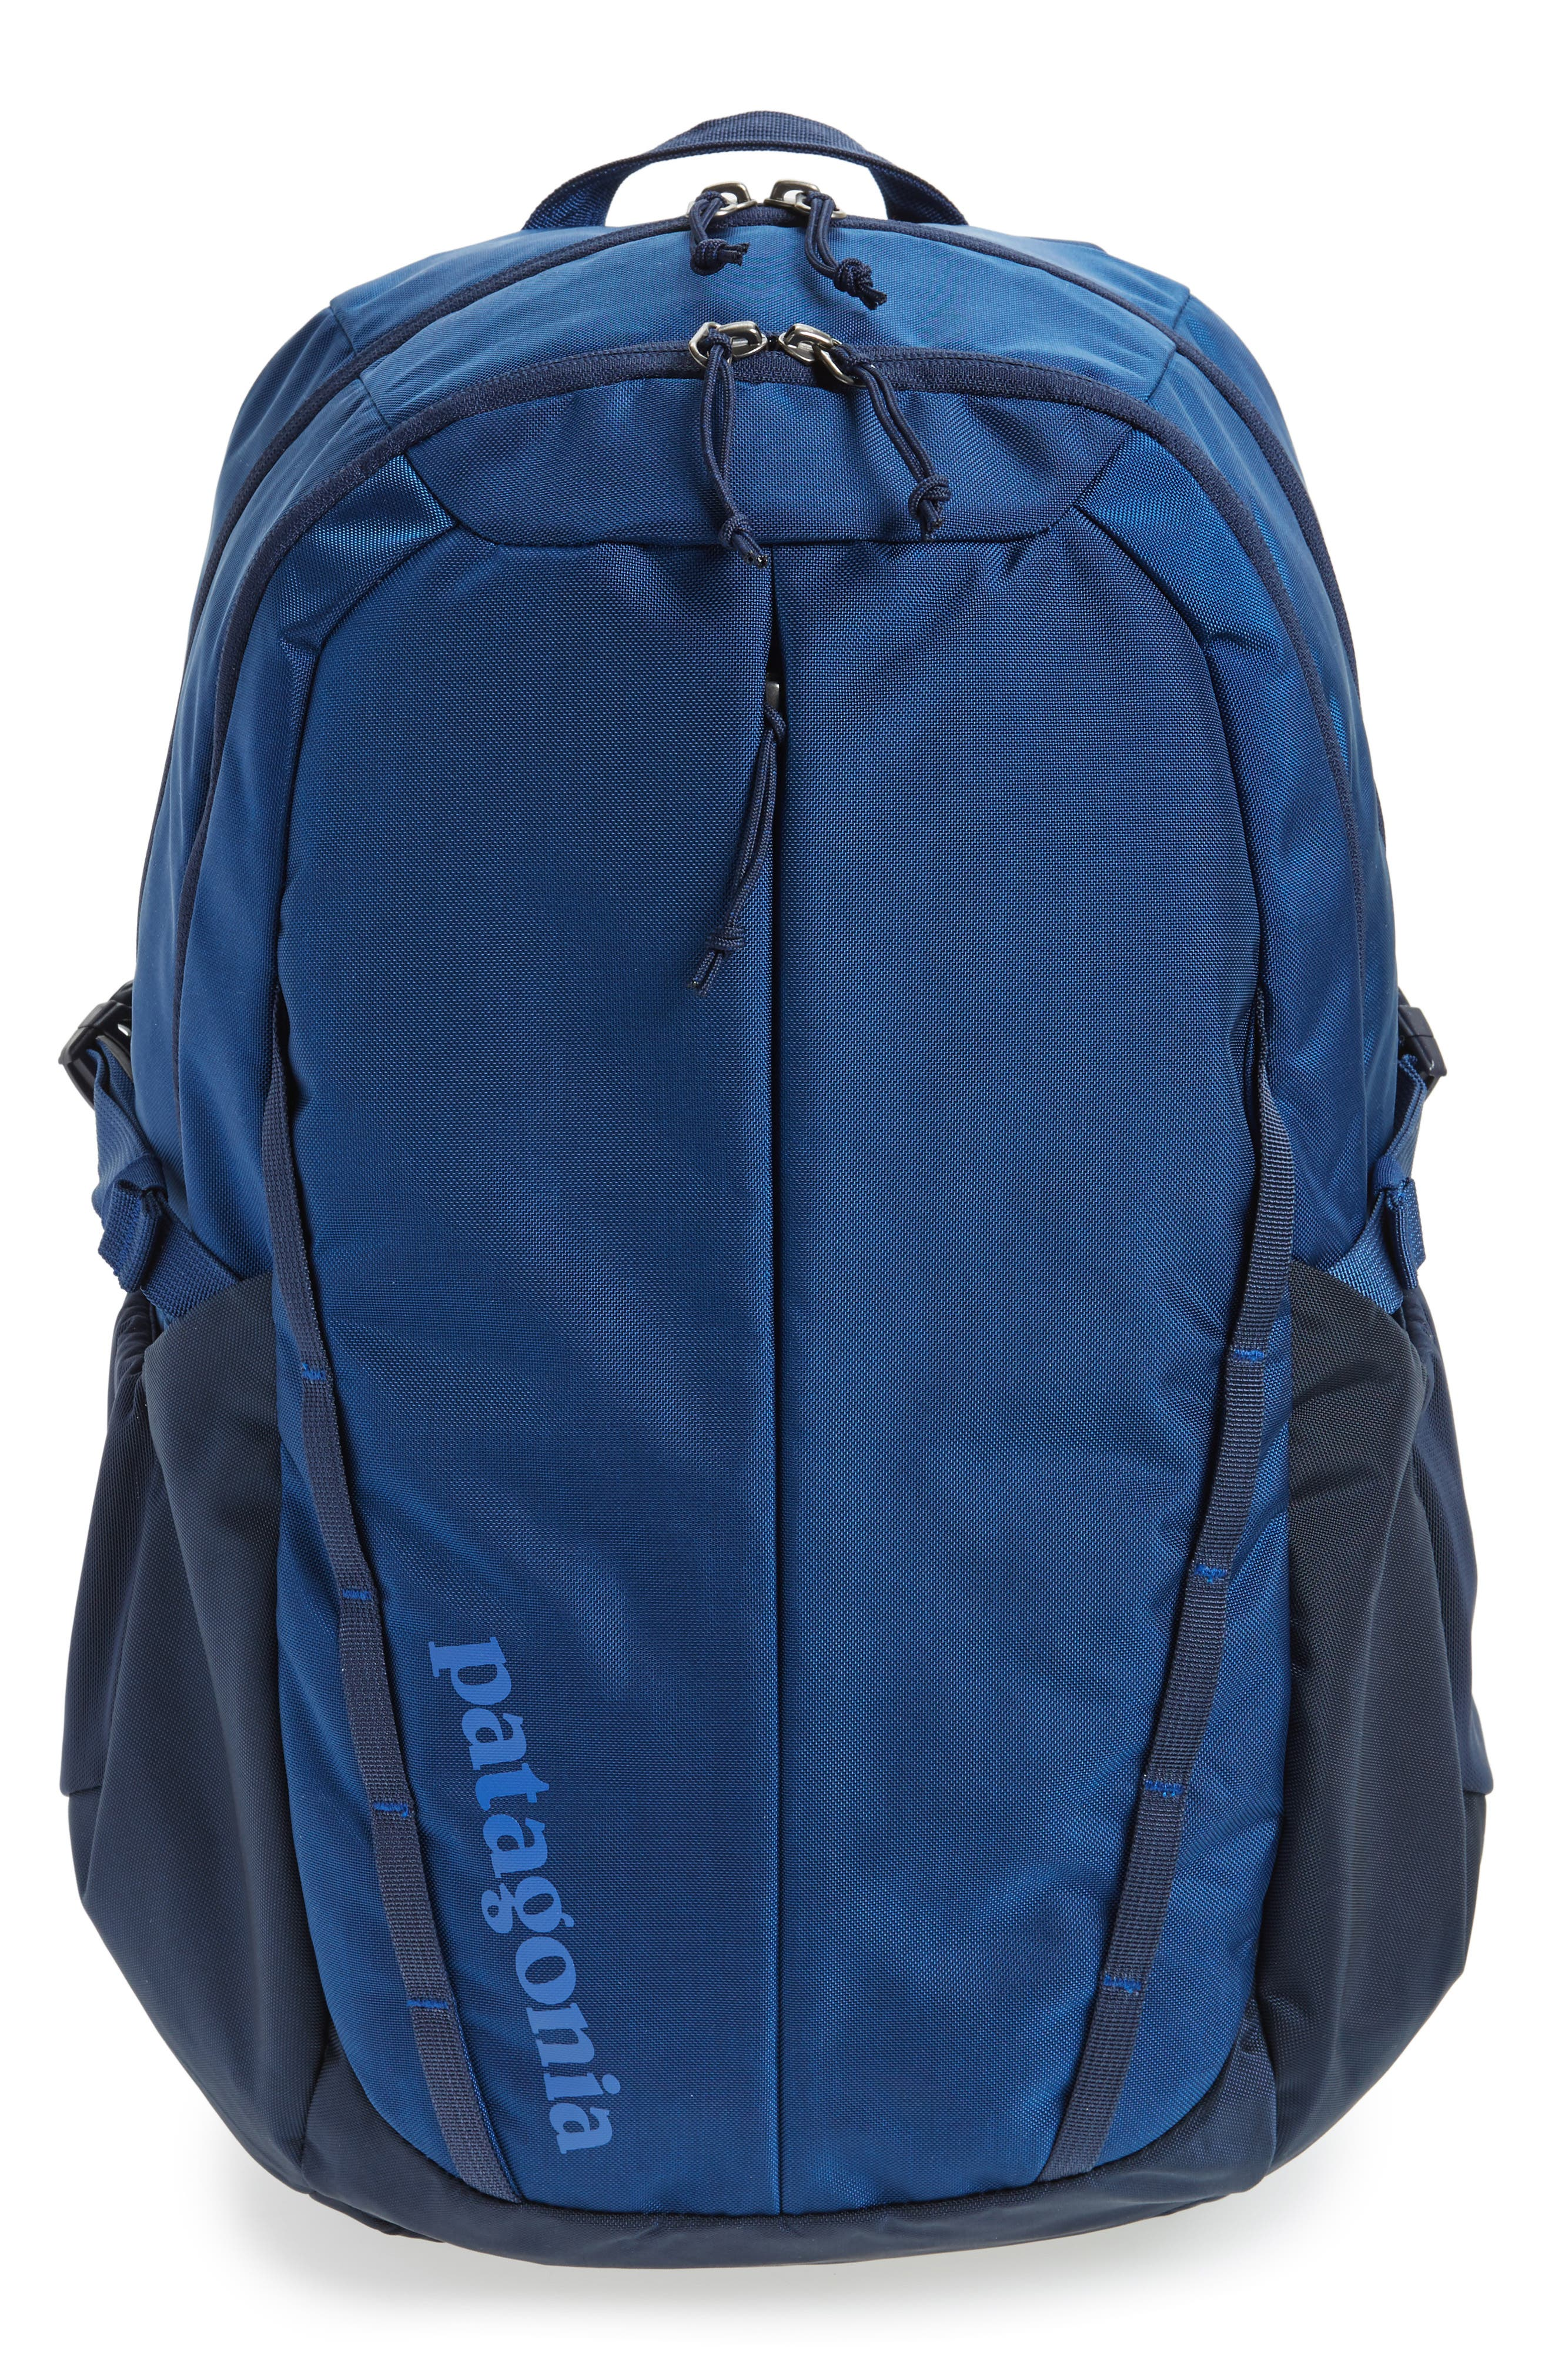 28L Refugio Backpack,                             Main thumbnail 1, color,                             Navy Blue